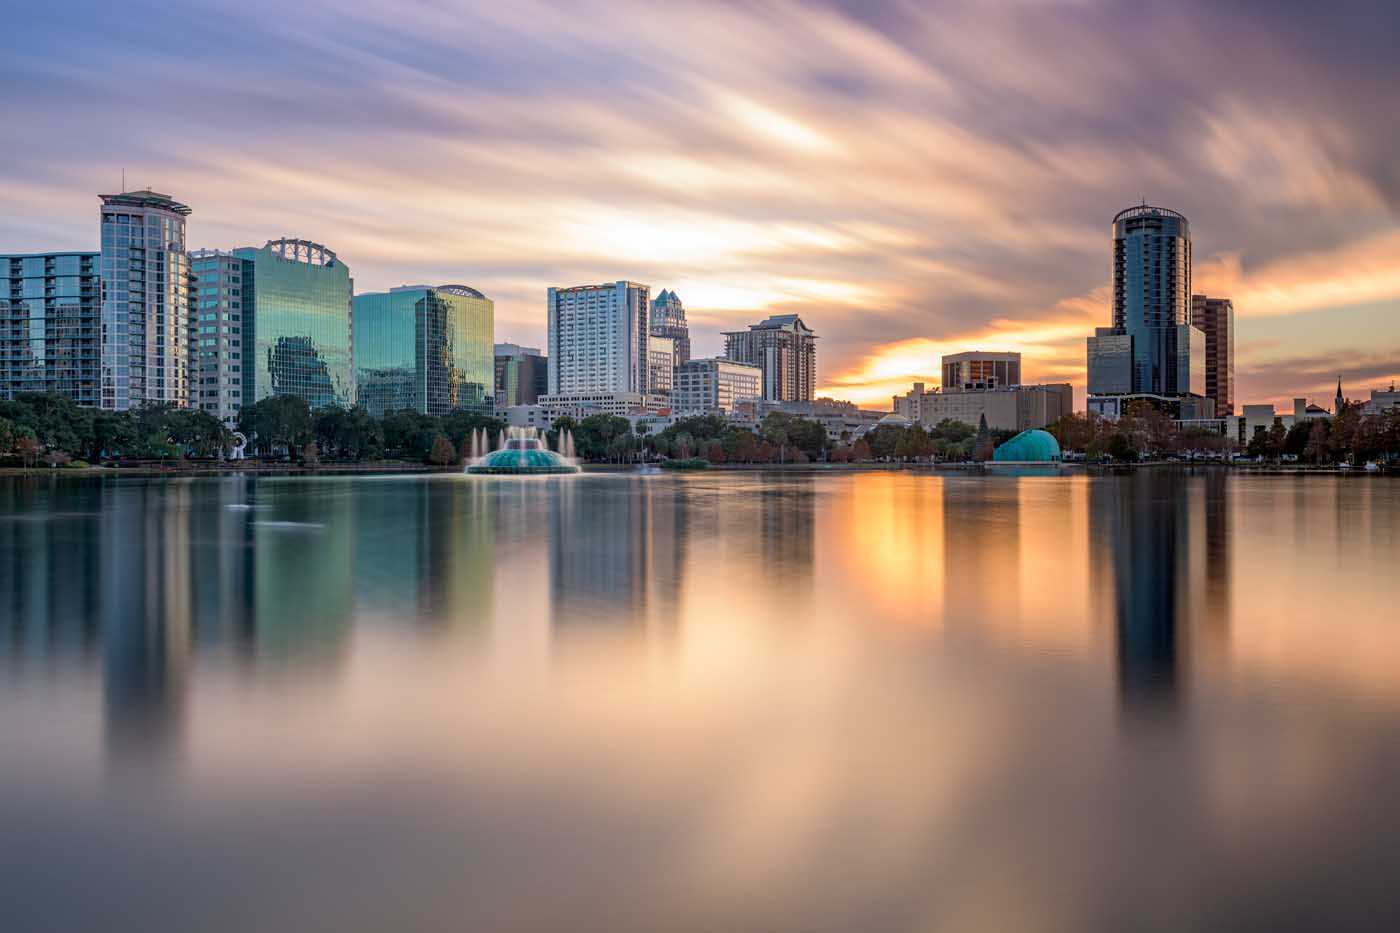 usa orlando How to have a hassle-free family trip to Orlando